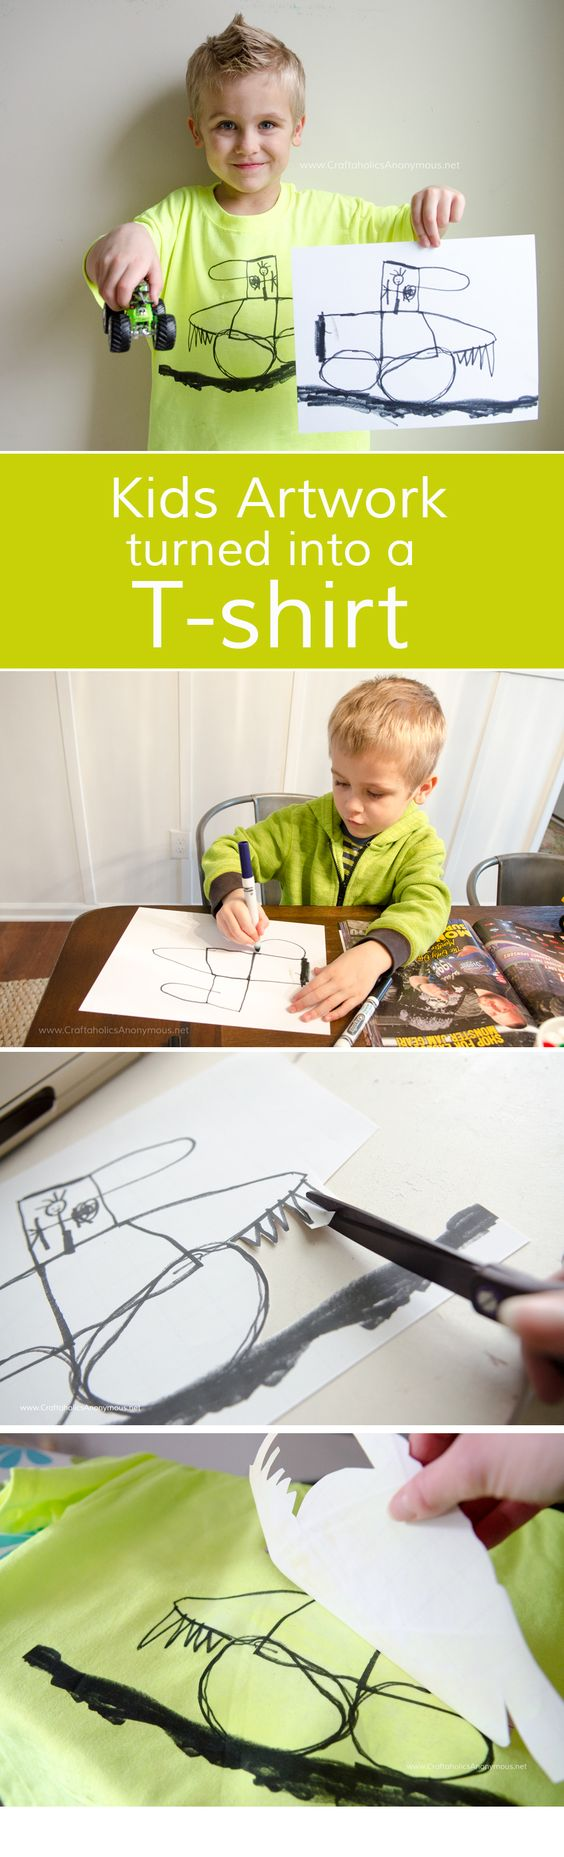 Design your own t-shirt and save it - Let Kids Design Their Own T Shirt With Their Artwork Easy Diy Kid Crafts